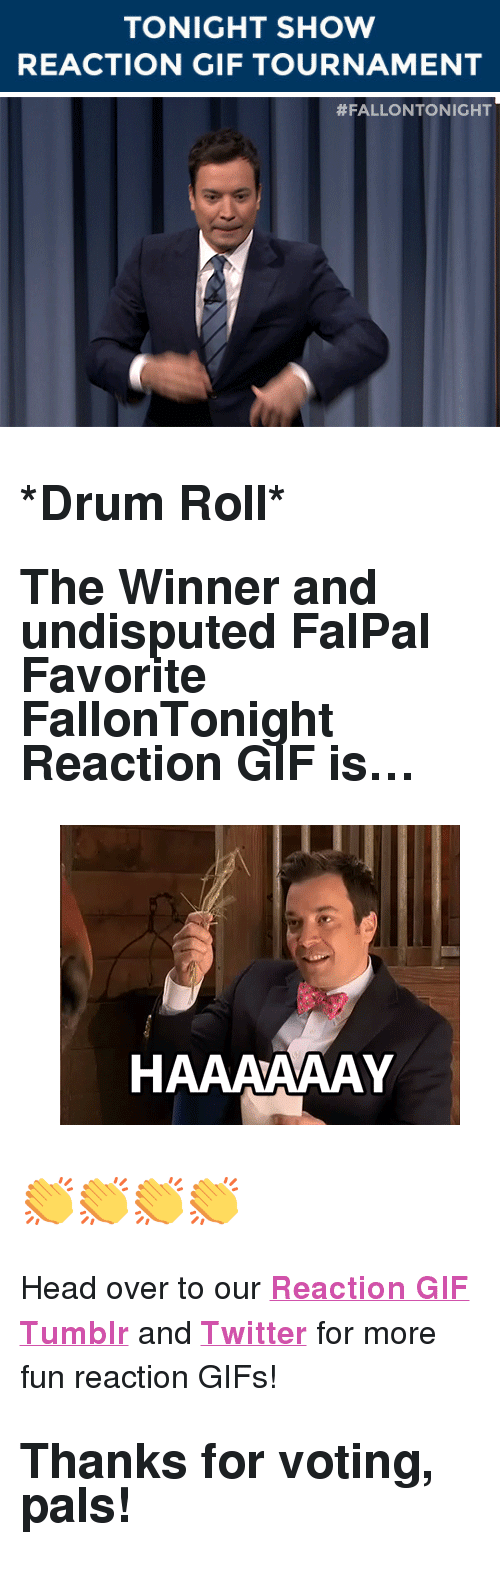 "reaction gifs: TONIGHT SHOW  REACTION GIF TOURNAMENT   <h2><b>*Drum Roll*</b></h2><h2>The Winner and undisputed FalPal Favorite FallonTonight Reaction GIF is&hellip;<br/></h2><figure data-orig-width=""400"" data-orig-height=""300"" class=""tmblr-full""><img src=""https://78.media.tumblr.com/4064a42ef1f616f26fa788794096c645/tumblr_inline_ntt6ayEBXj1qgt12i_500.gif"" alt=""image"" data-orig-width=""400"" data-orig-height=""300""/></figure><h2>👏👏👏👏</h2><p>Head over to our <a href=""http://fallontonightgifs.tumblr.com/"" target=""_blank""><b>Reaction GIF Tumblr</b></a> and <b><a href=""https://twitter.com/TonightShowGIFs"" target=""_blank"">Twitter</a></b> for more fun reaction GIFs! </p><h2><b>Thanks for voting, pals! </b></h2>"